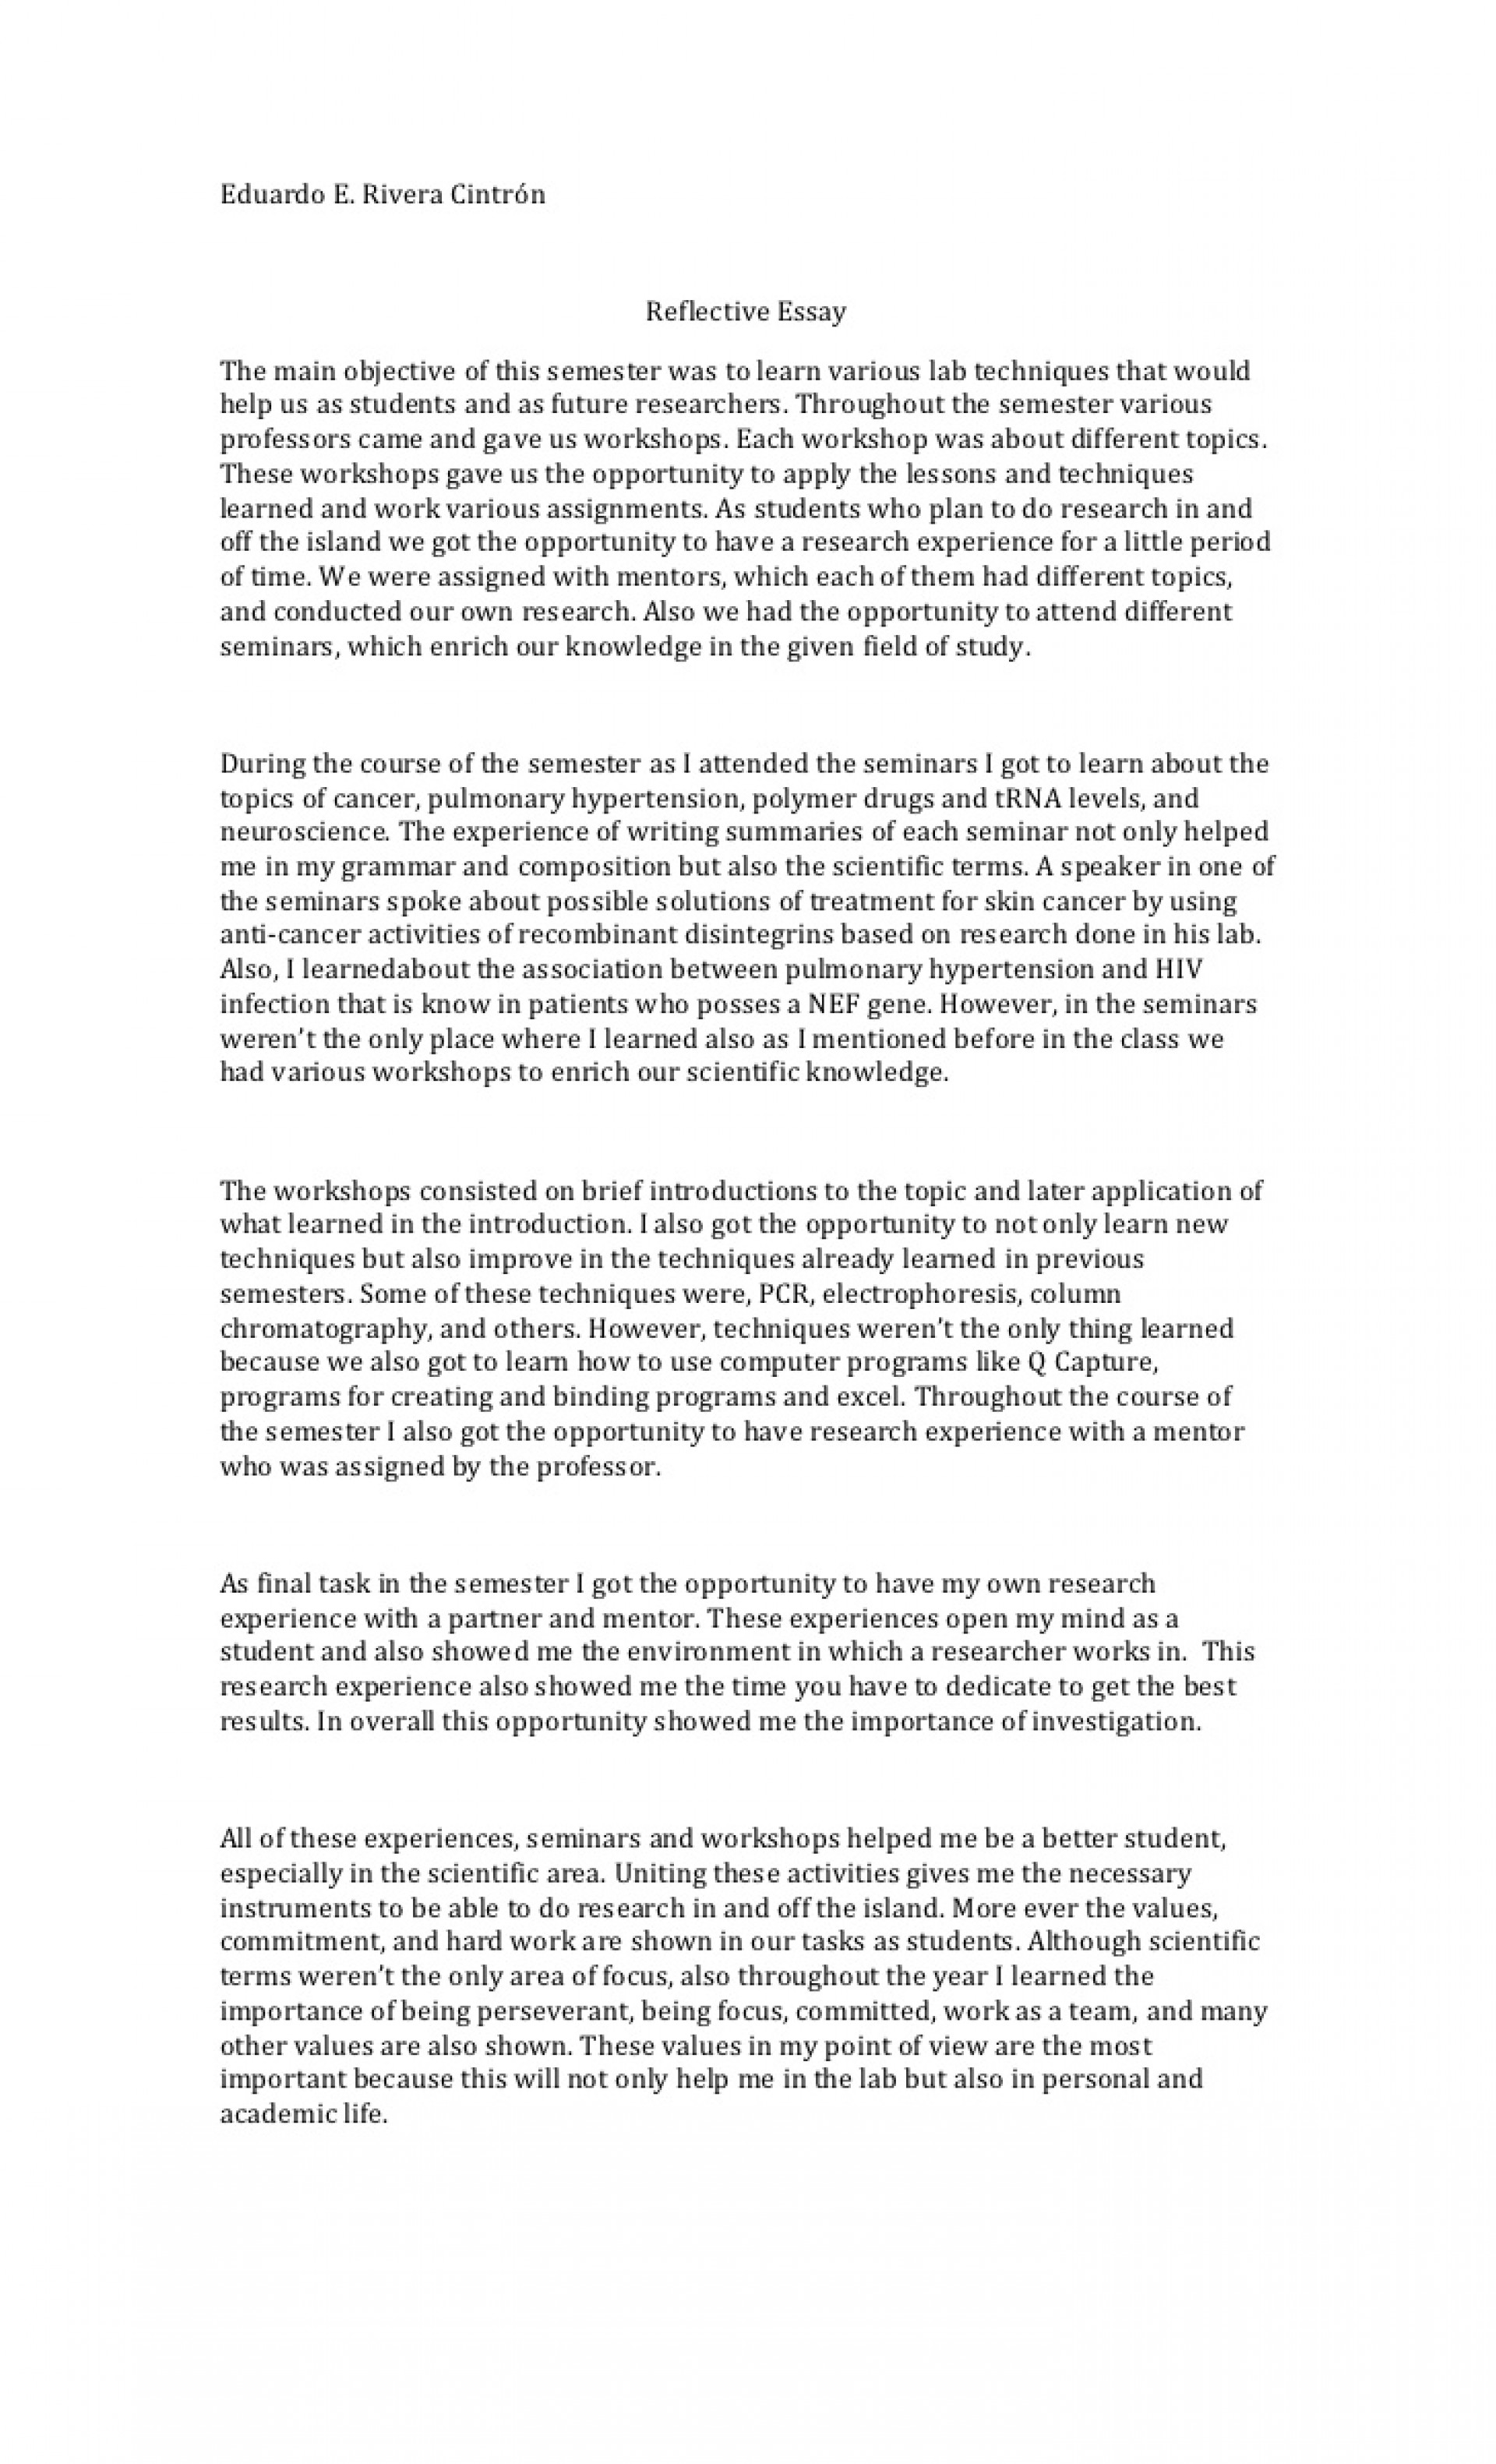 006 Reflective Essay Example Course Unforgettable Examples About Life Pdf High School Students Apa 1920